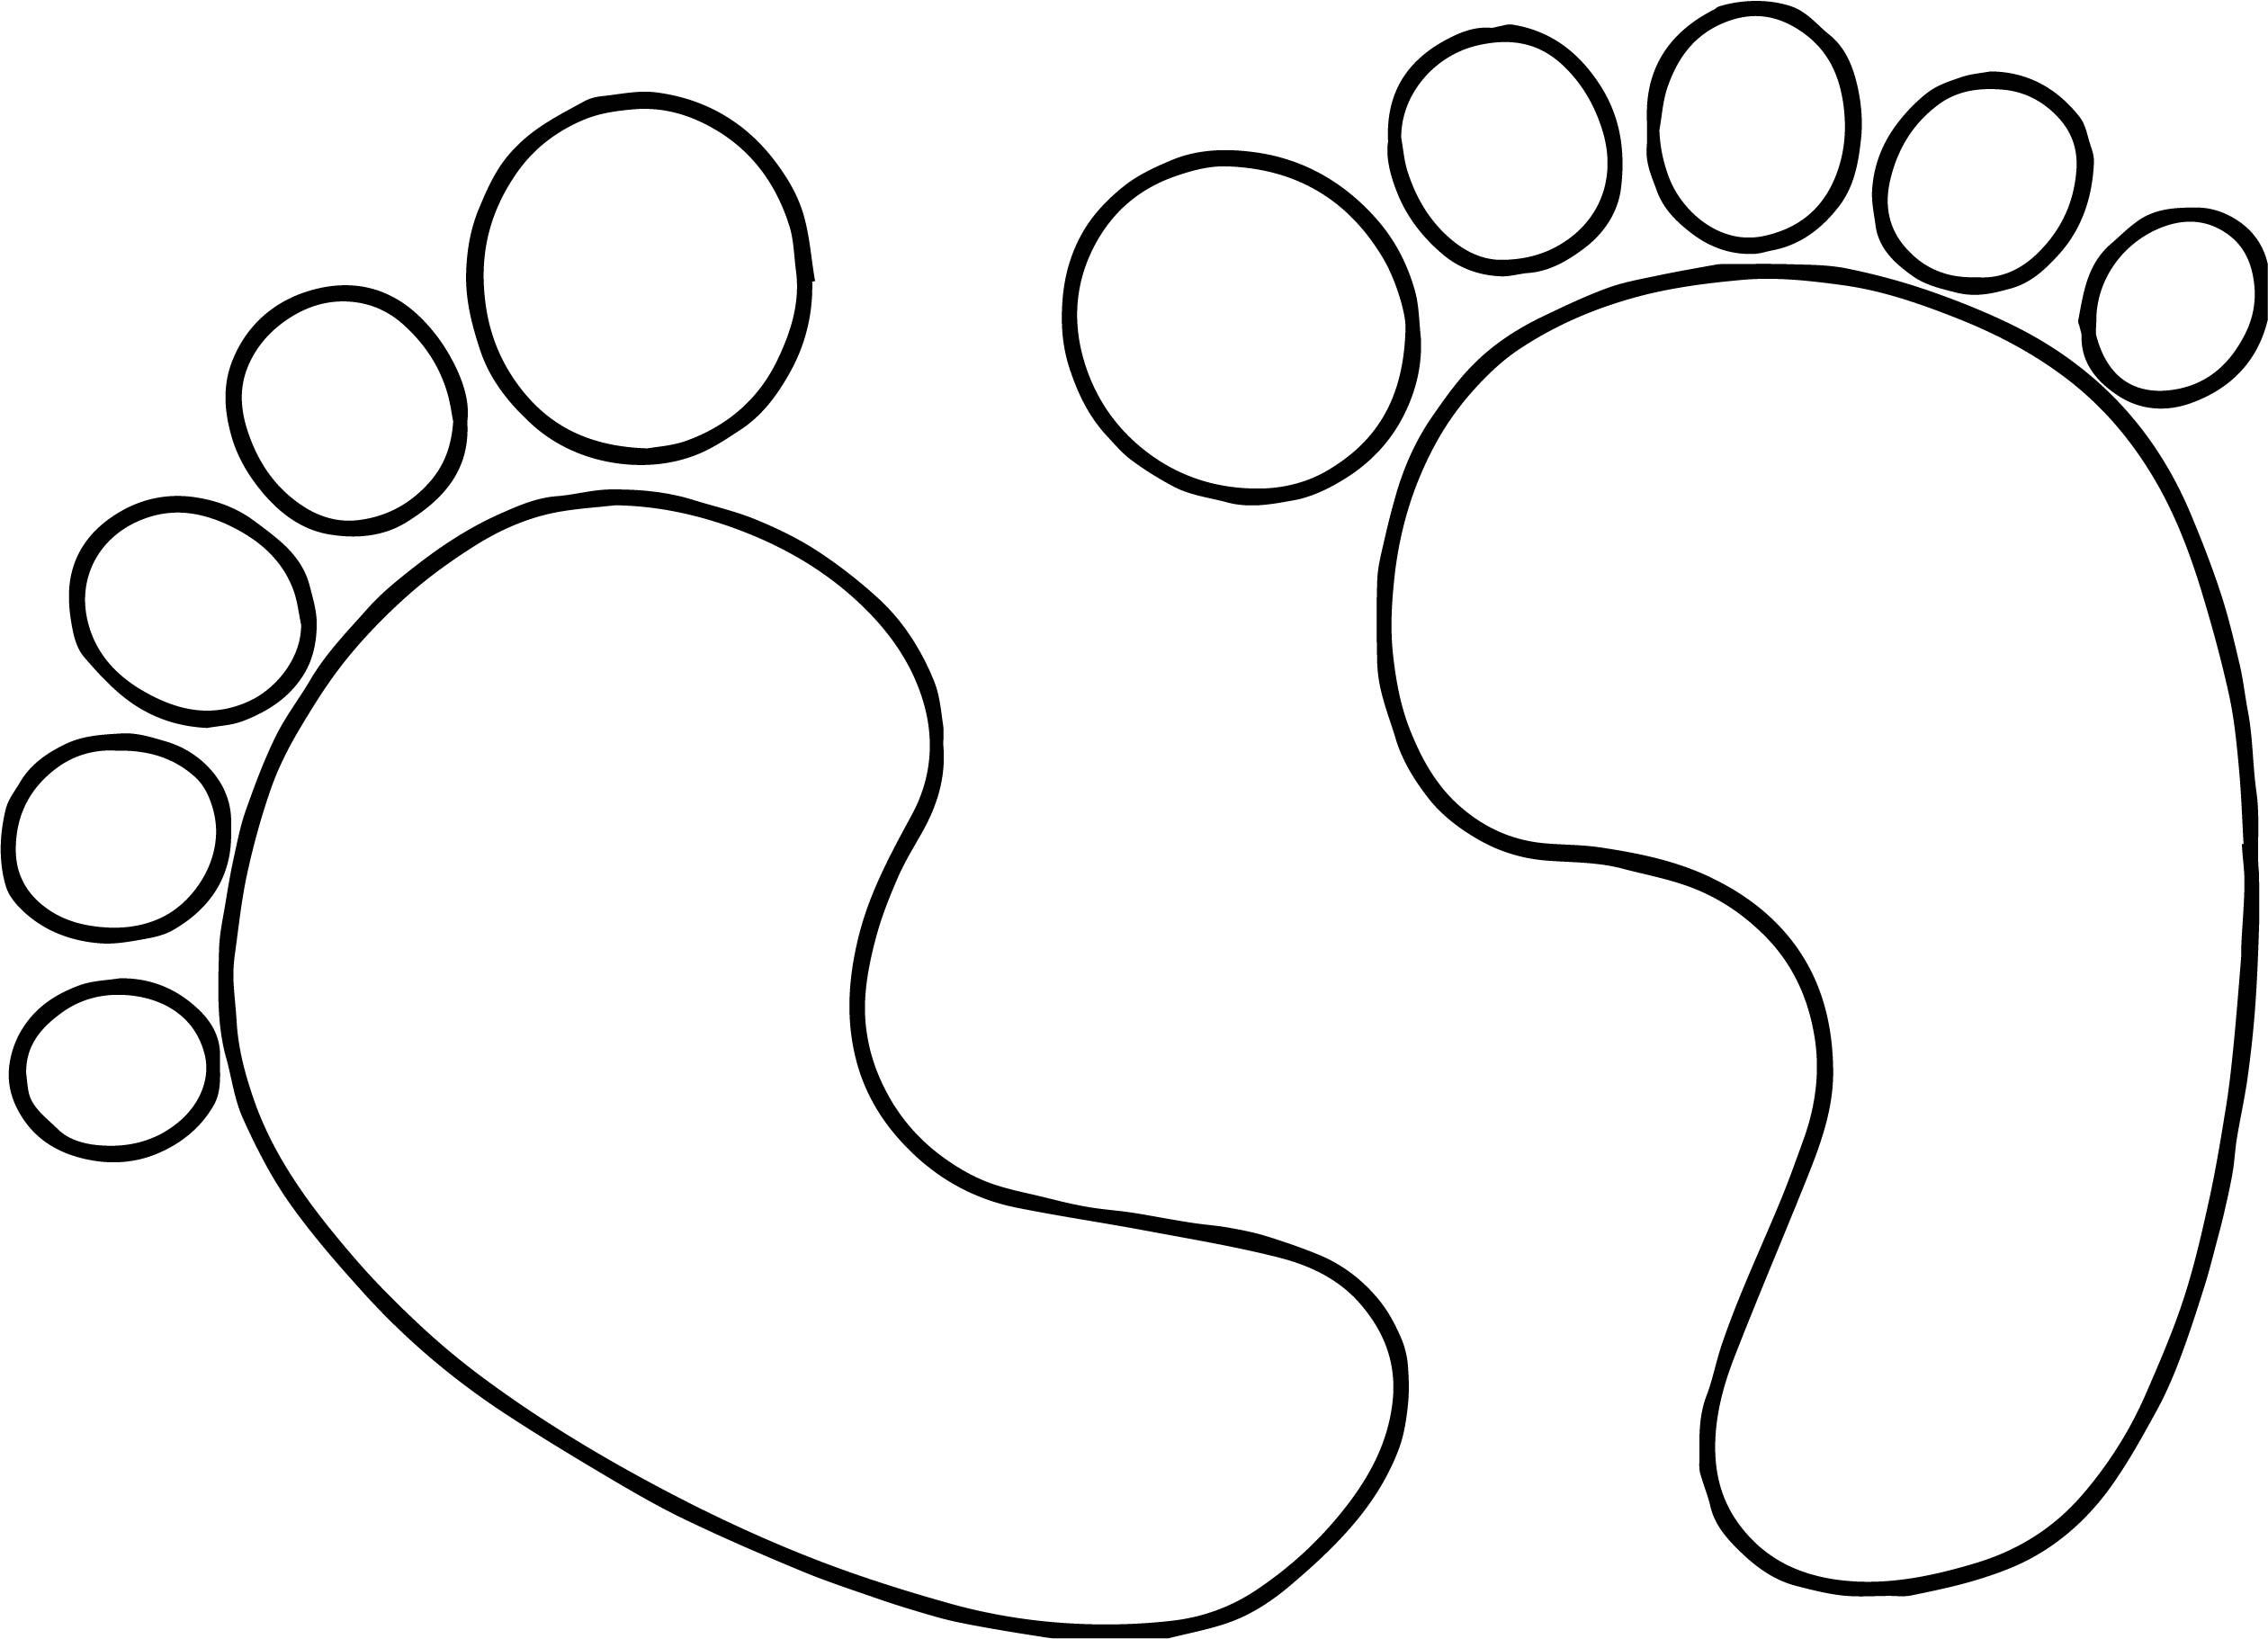 foot coloring pages - photo#11